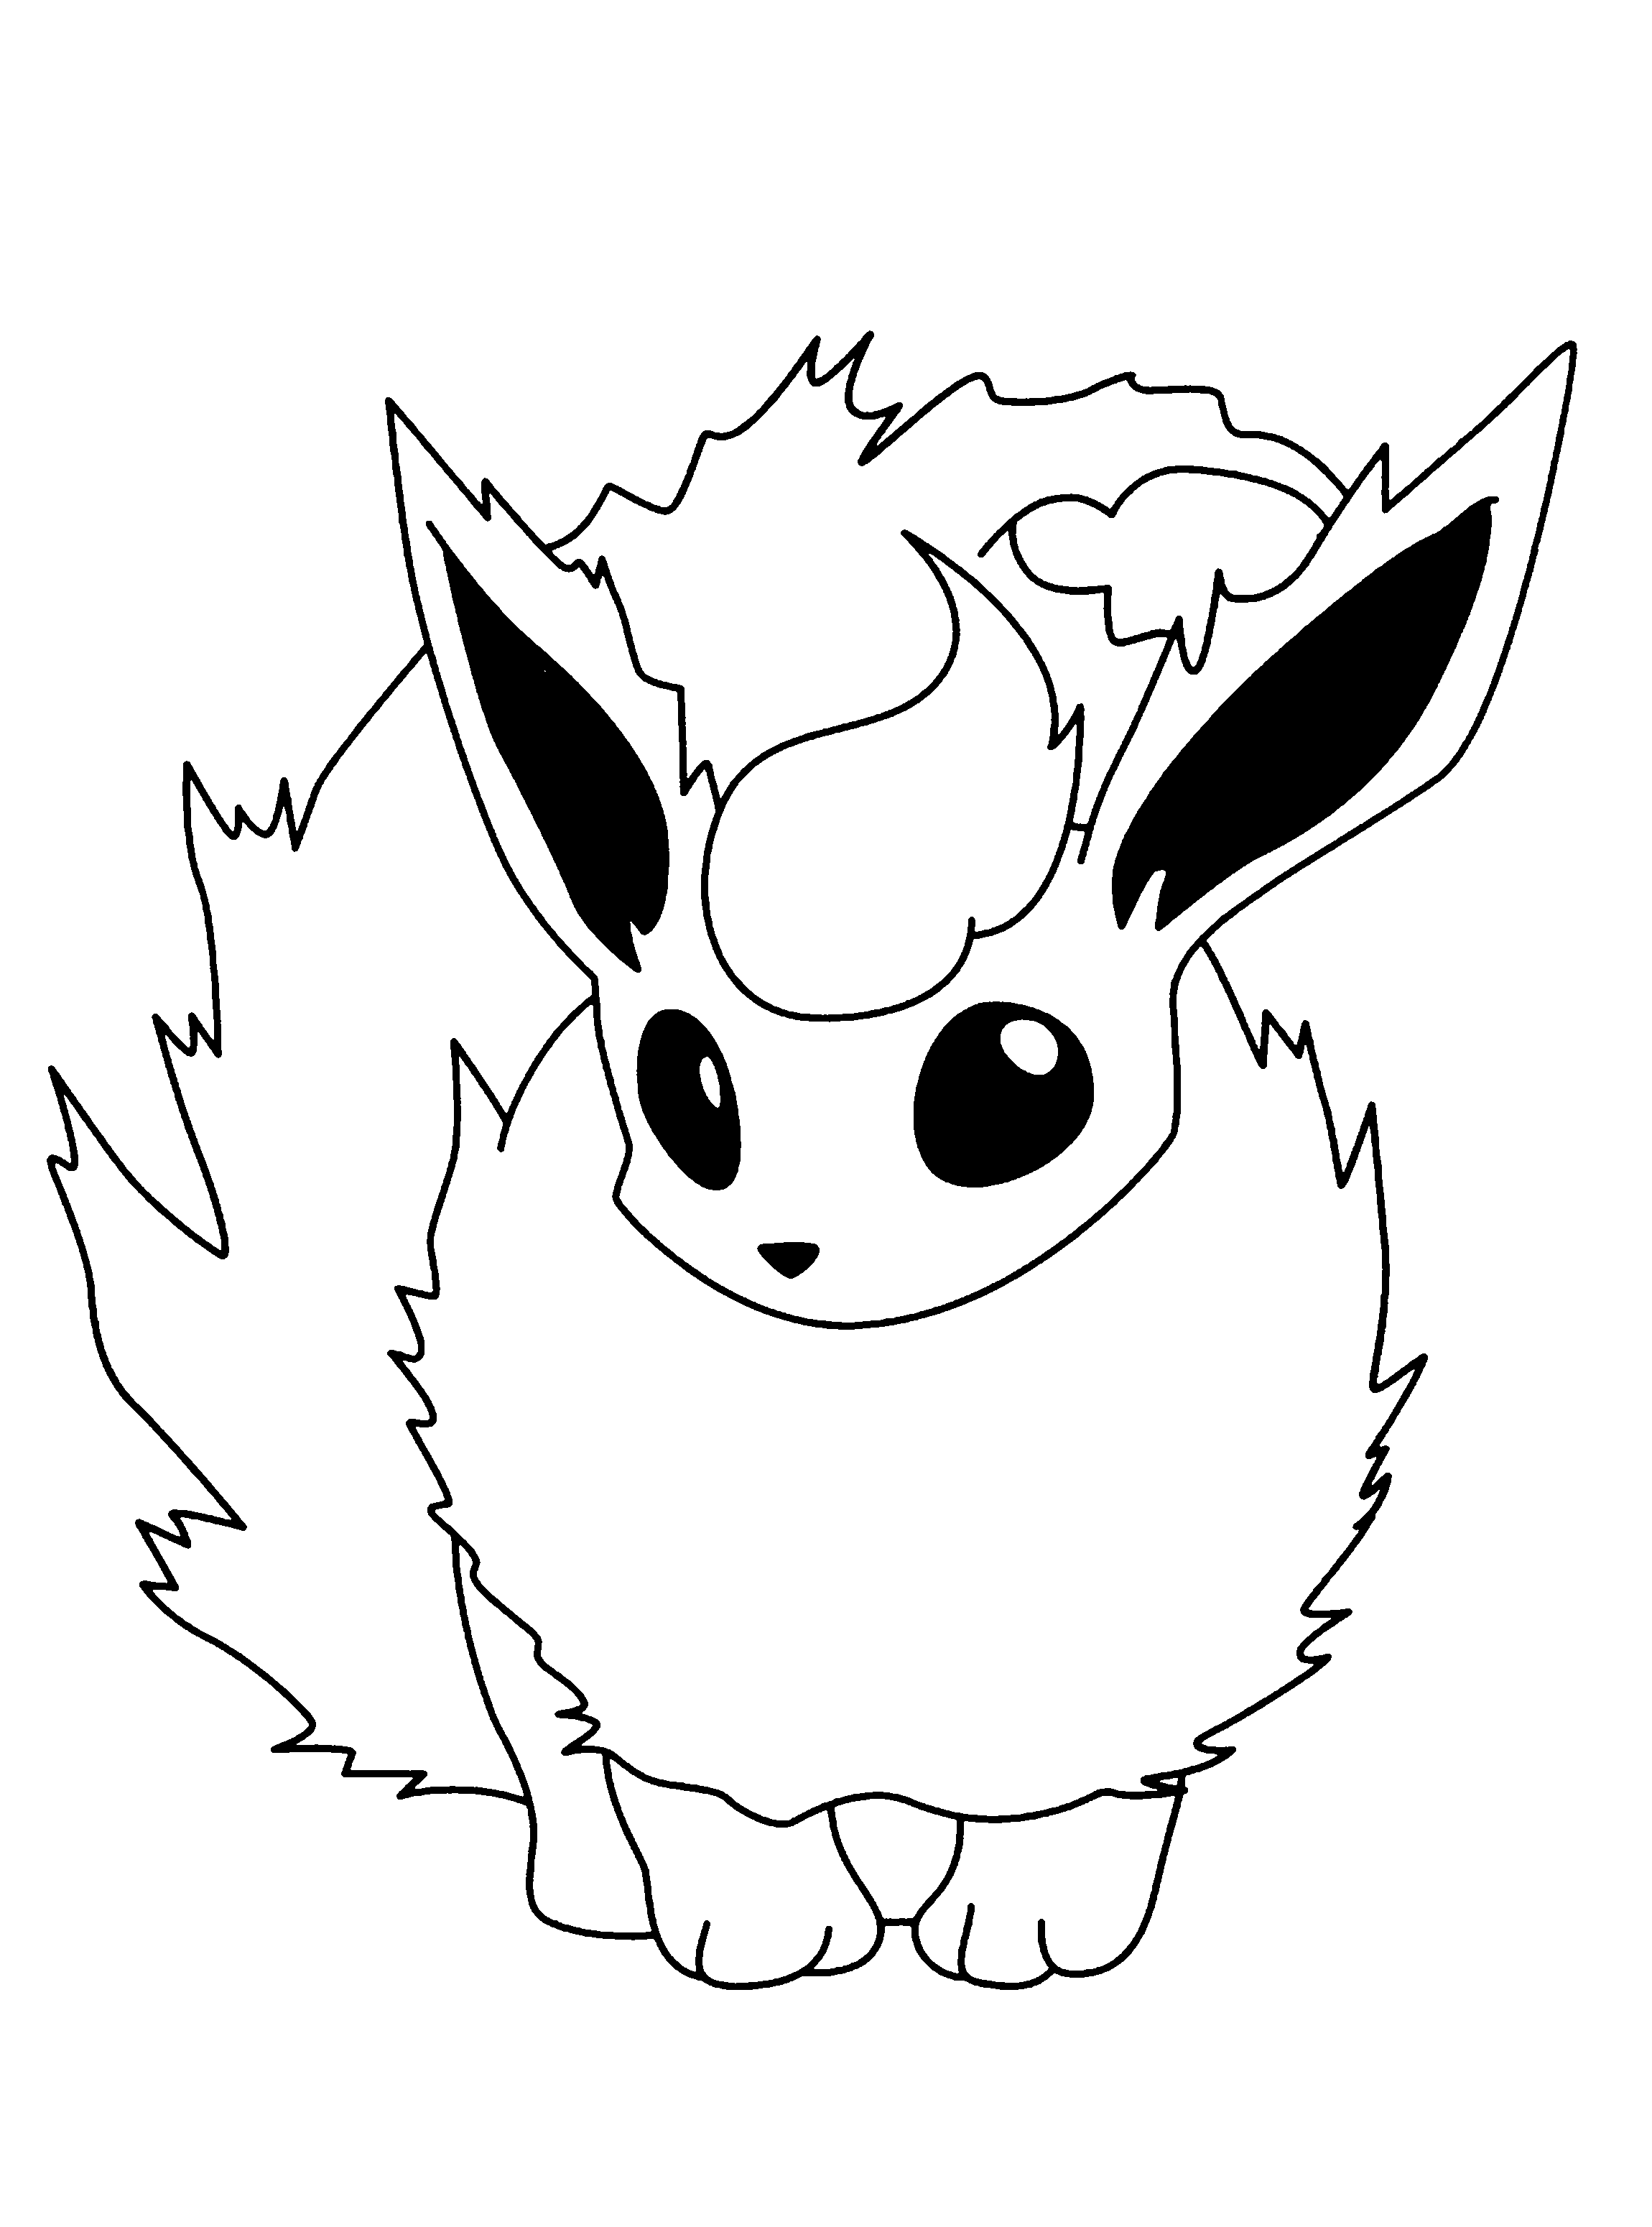 Pokemon coloring pages download pokemon images and print them for